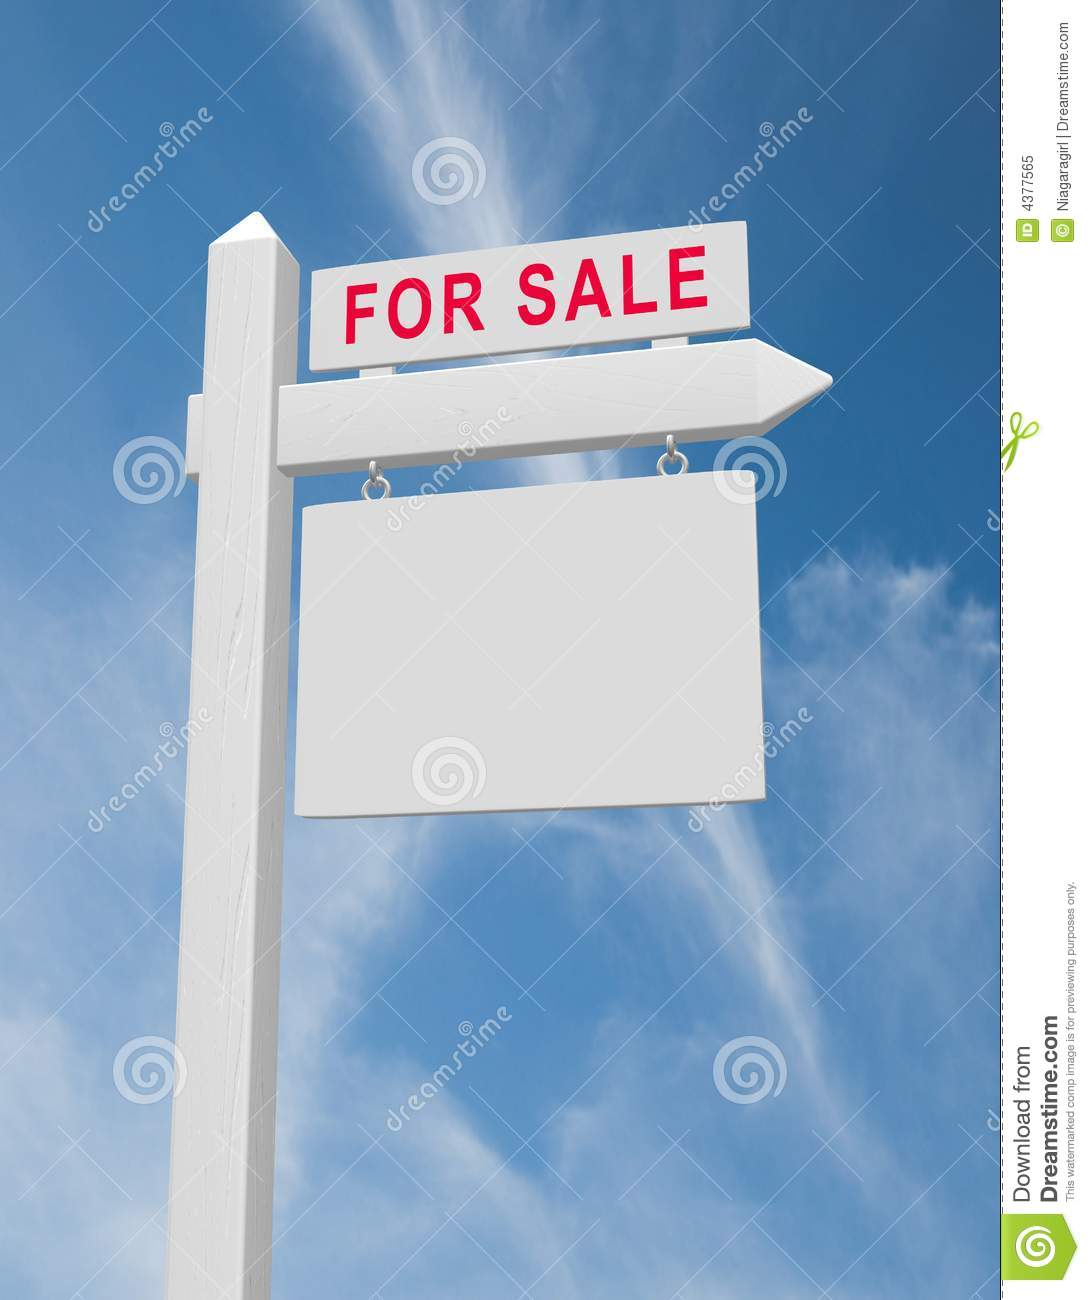 for sale sign royalty free stock photo